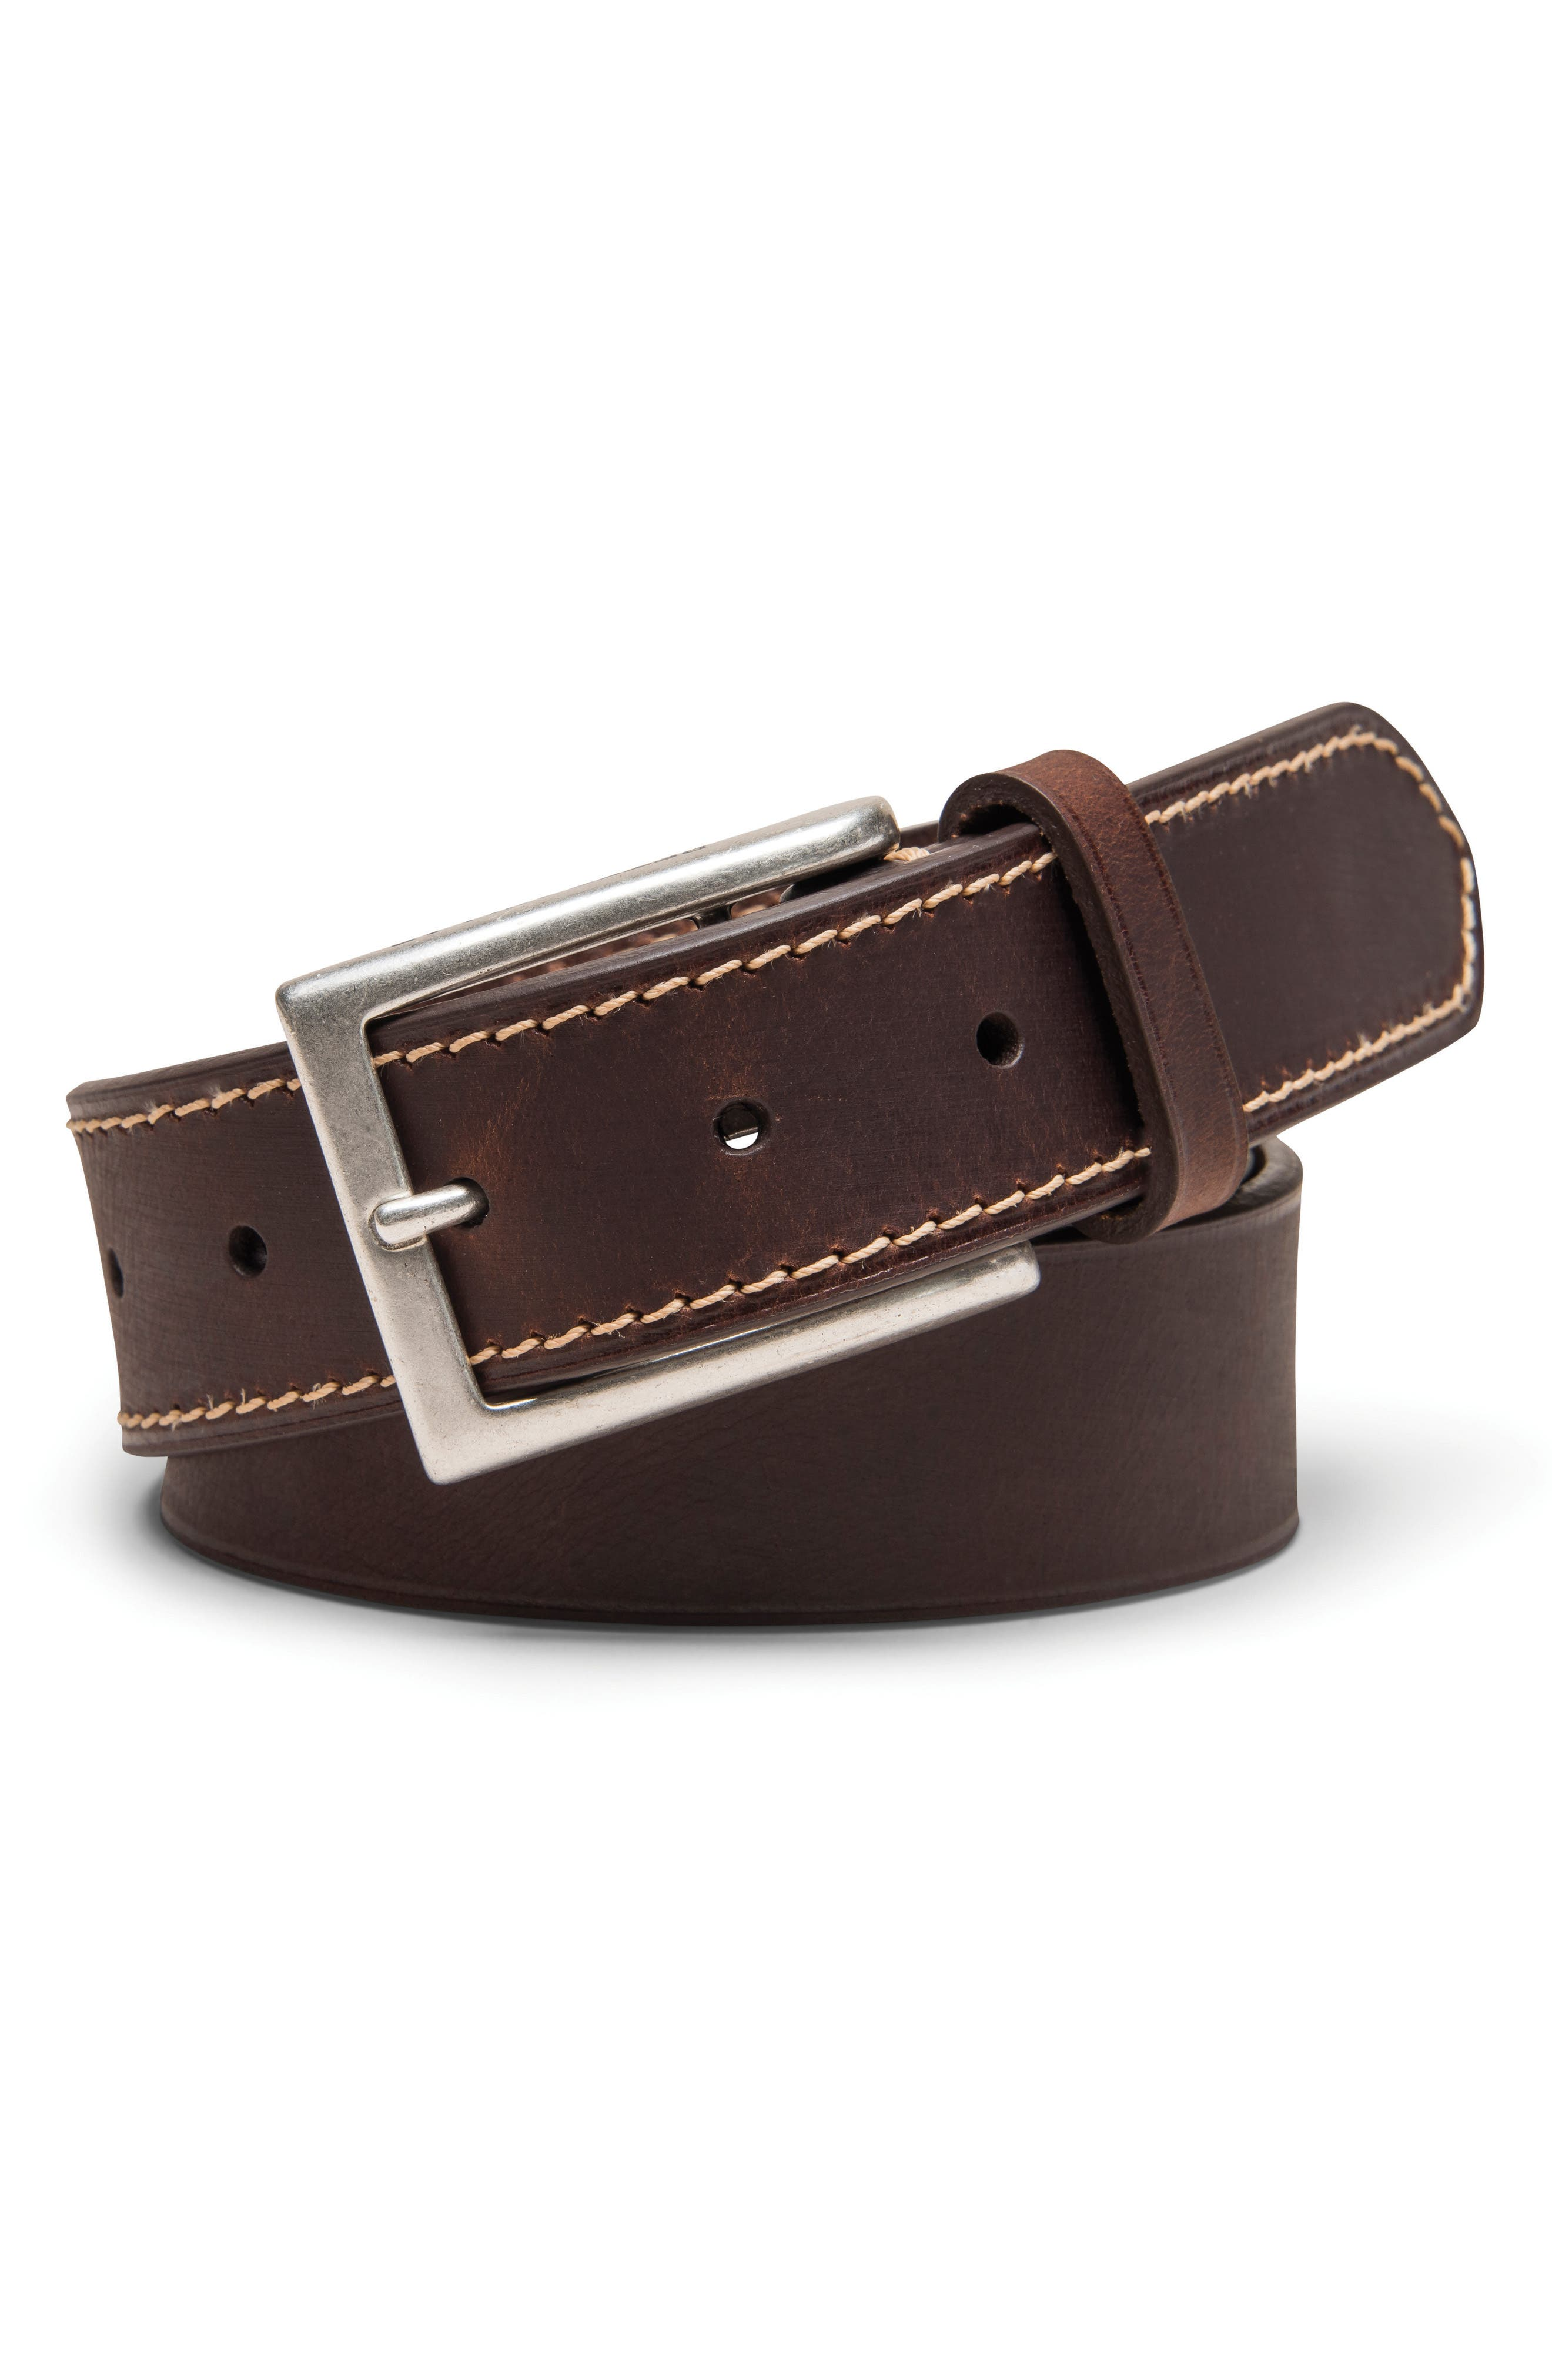 Contrast Stitch Leather Belt,                             Main thumbnail 1, color,                             Chocolate